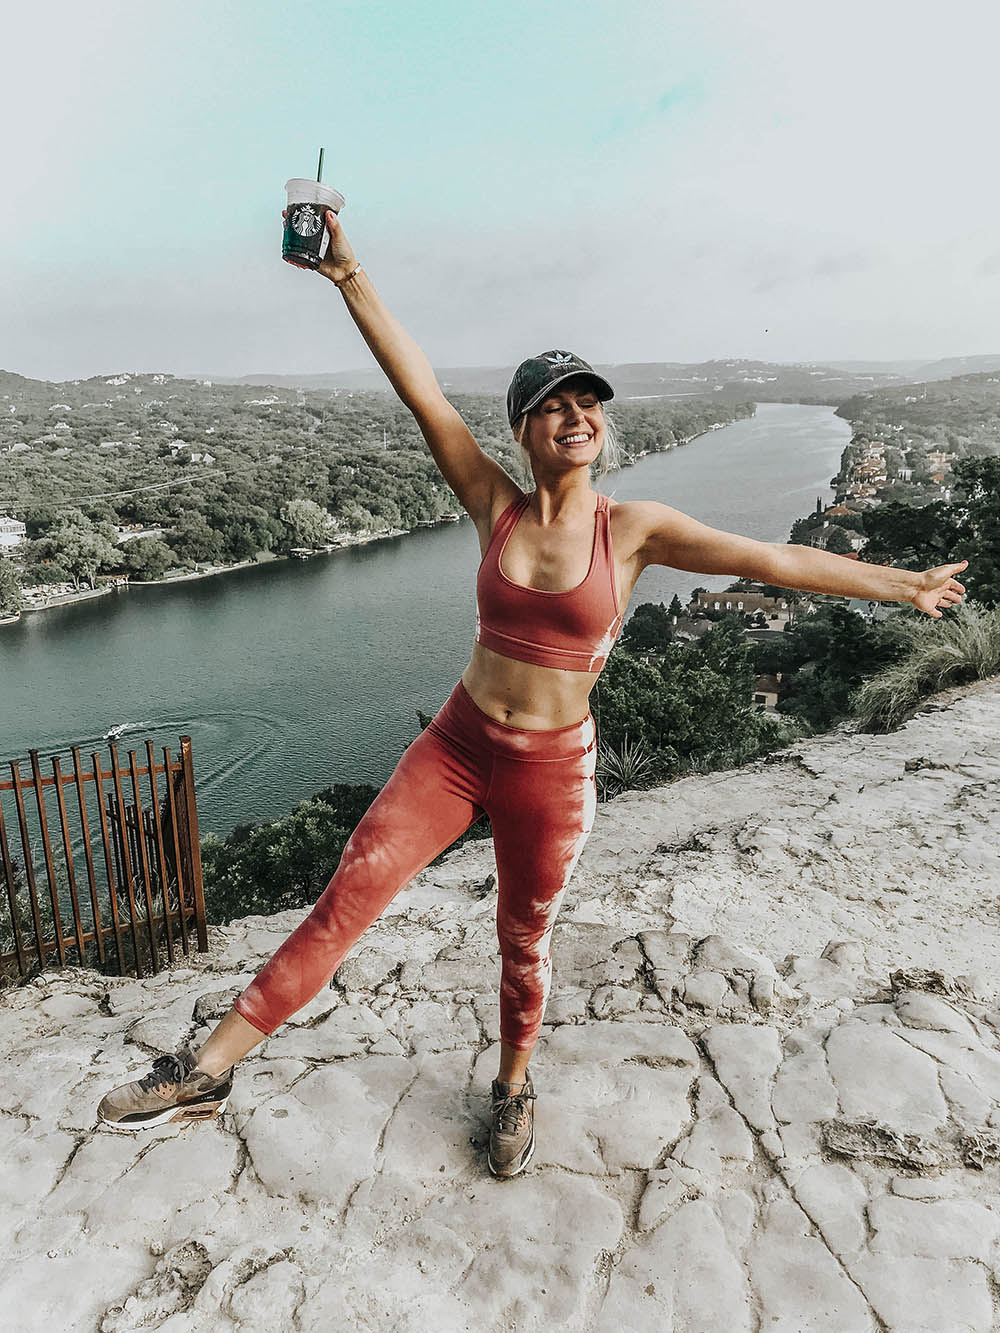 My Fitness & Nutrition Overview